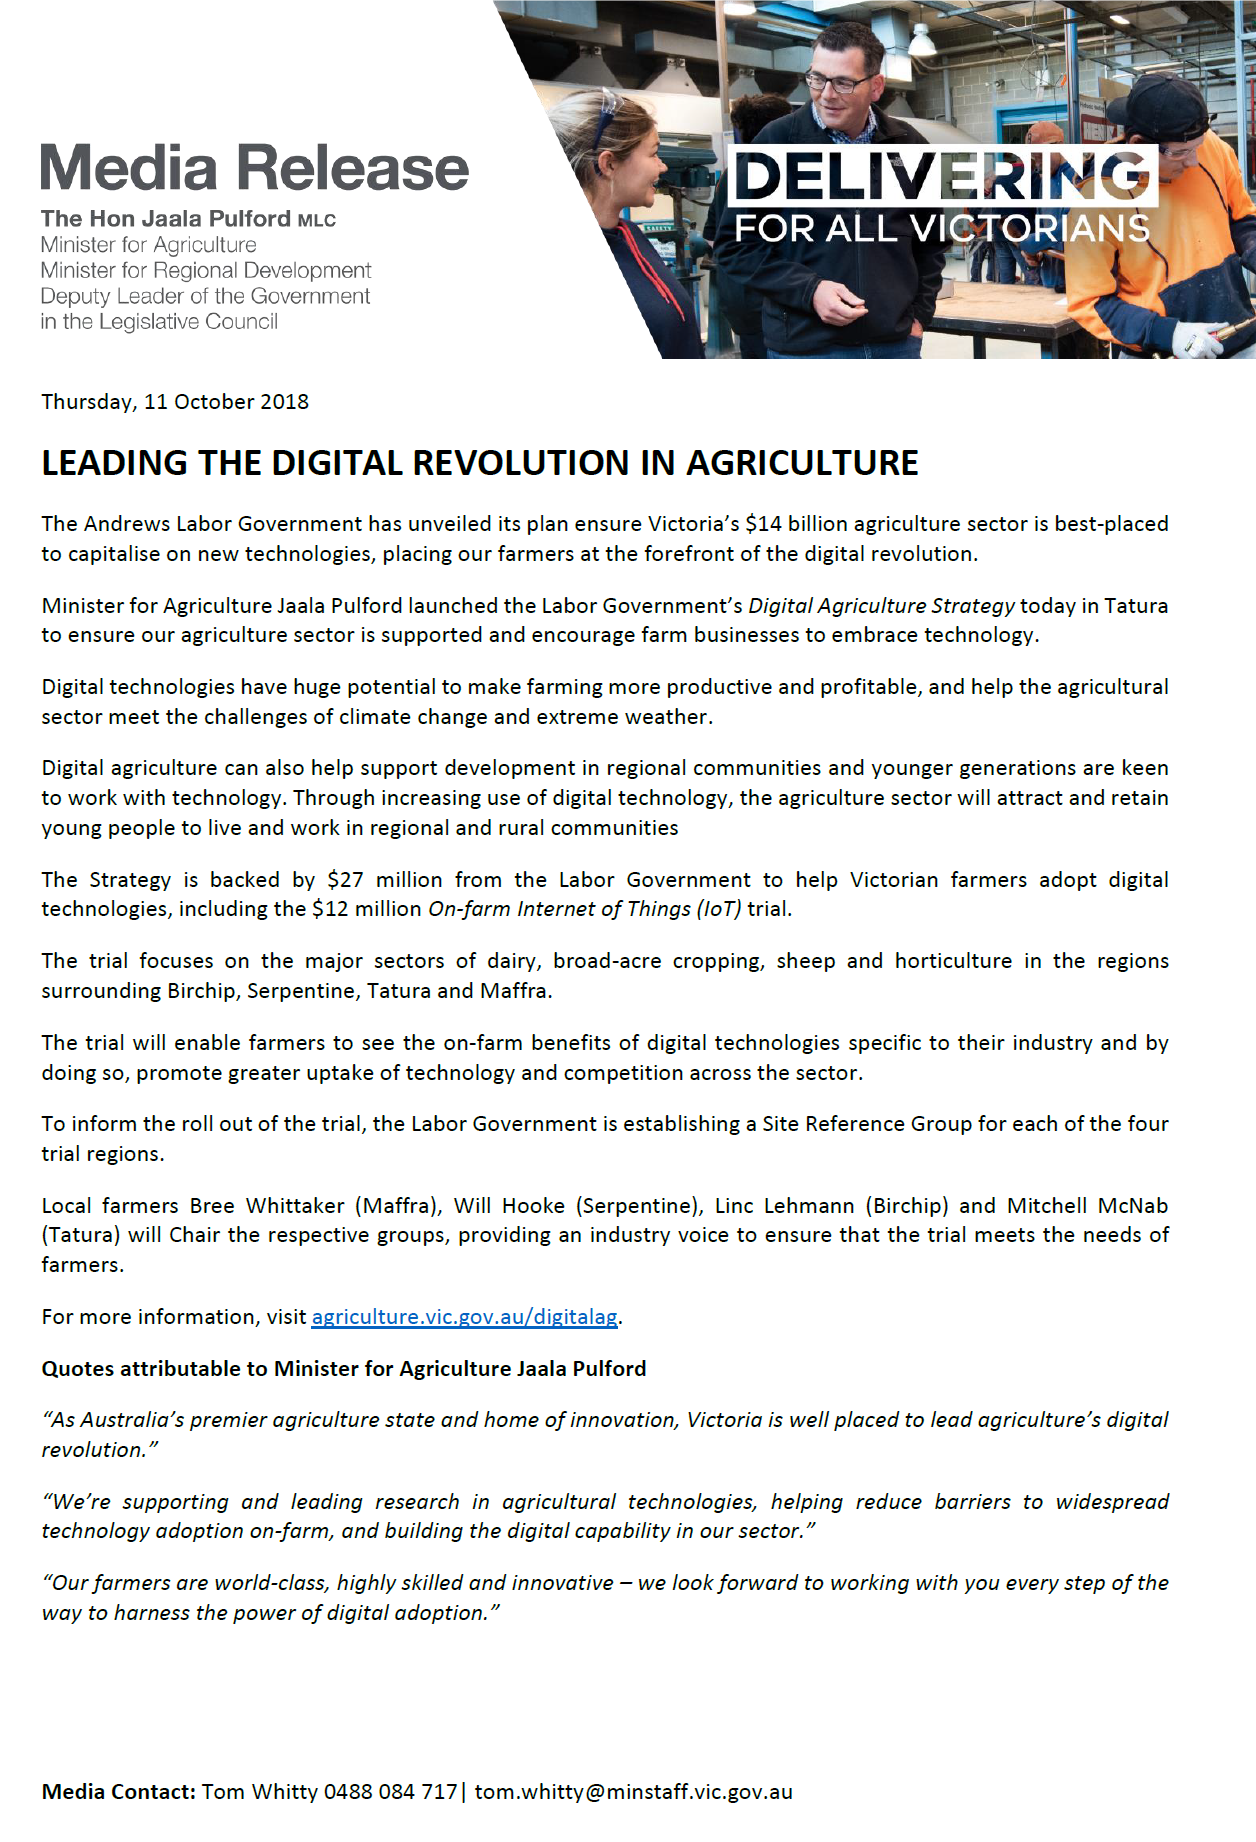 Media Release Leading the digital Revolution in Agriculture